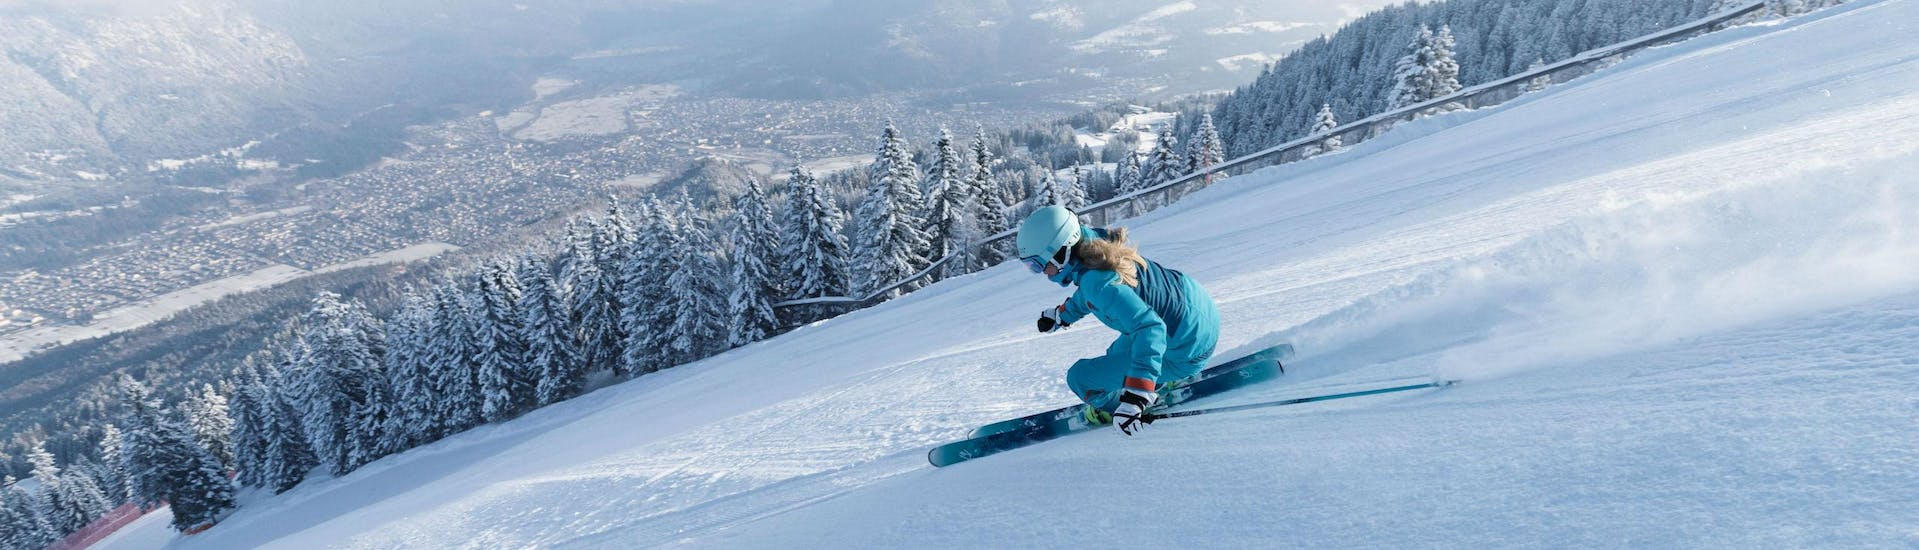 A female skier is speeding down a perfectly prepared slope overlooking the ski resort of Garmisch-Classic, where local ski schools offer a broad selection of ski lessons. (c)Bayerische Zugspitzbahn Bergbahn AGfendstudios.com